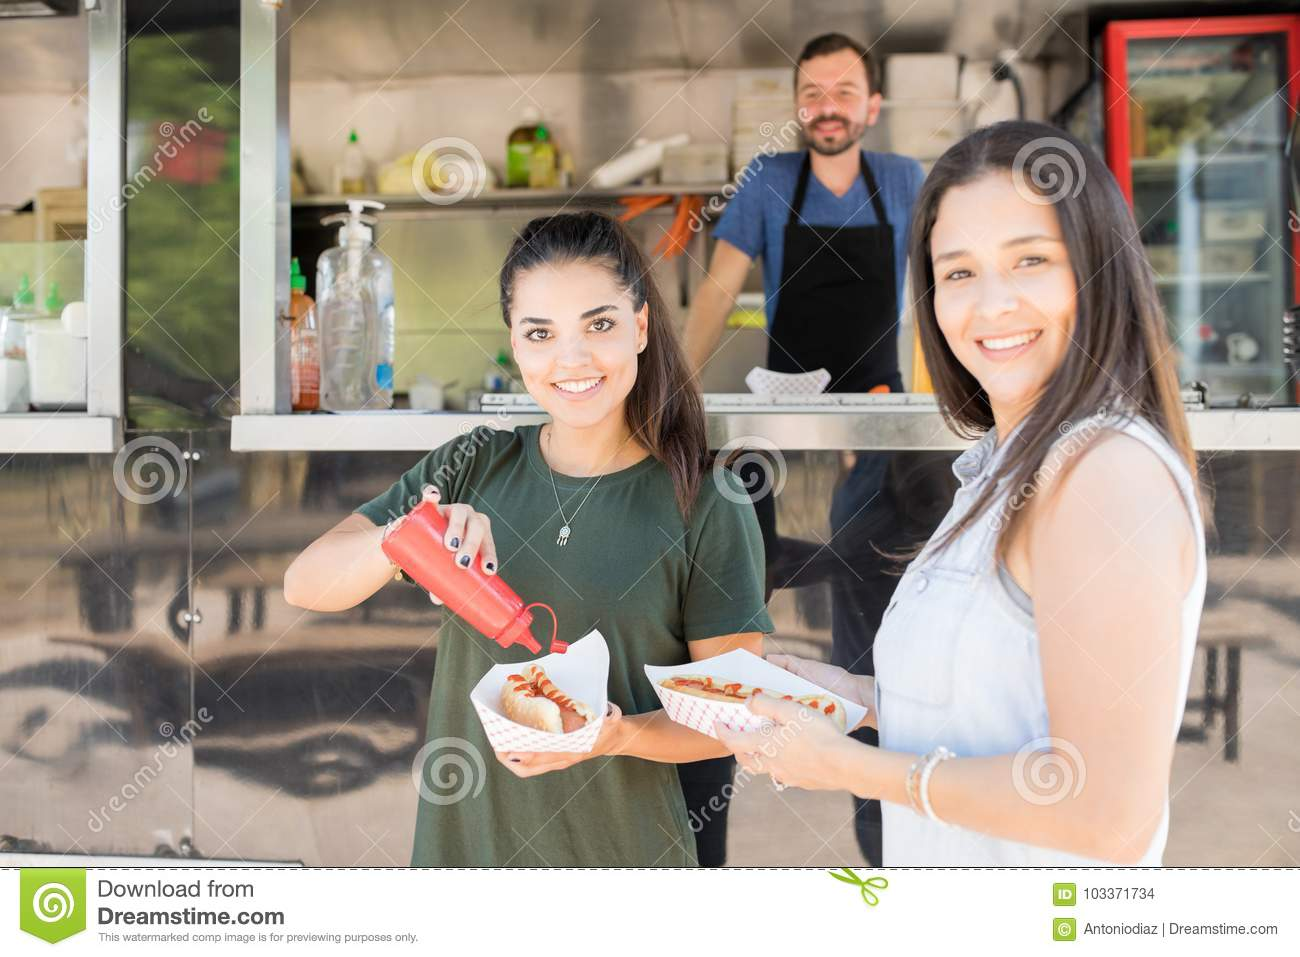 Happy girls eating at a food truck